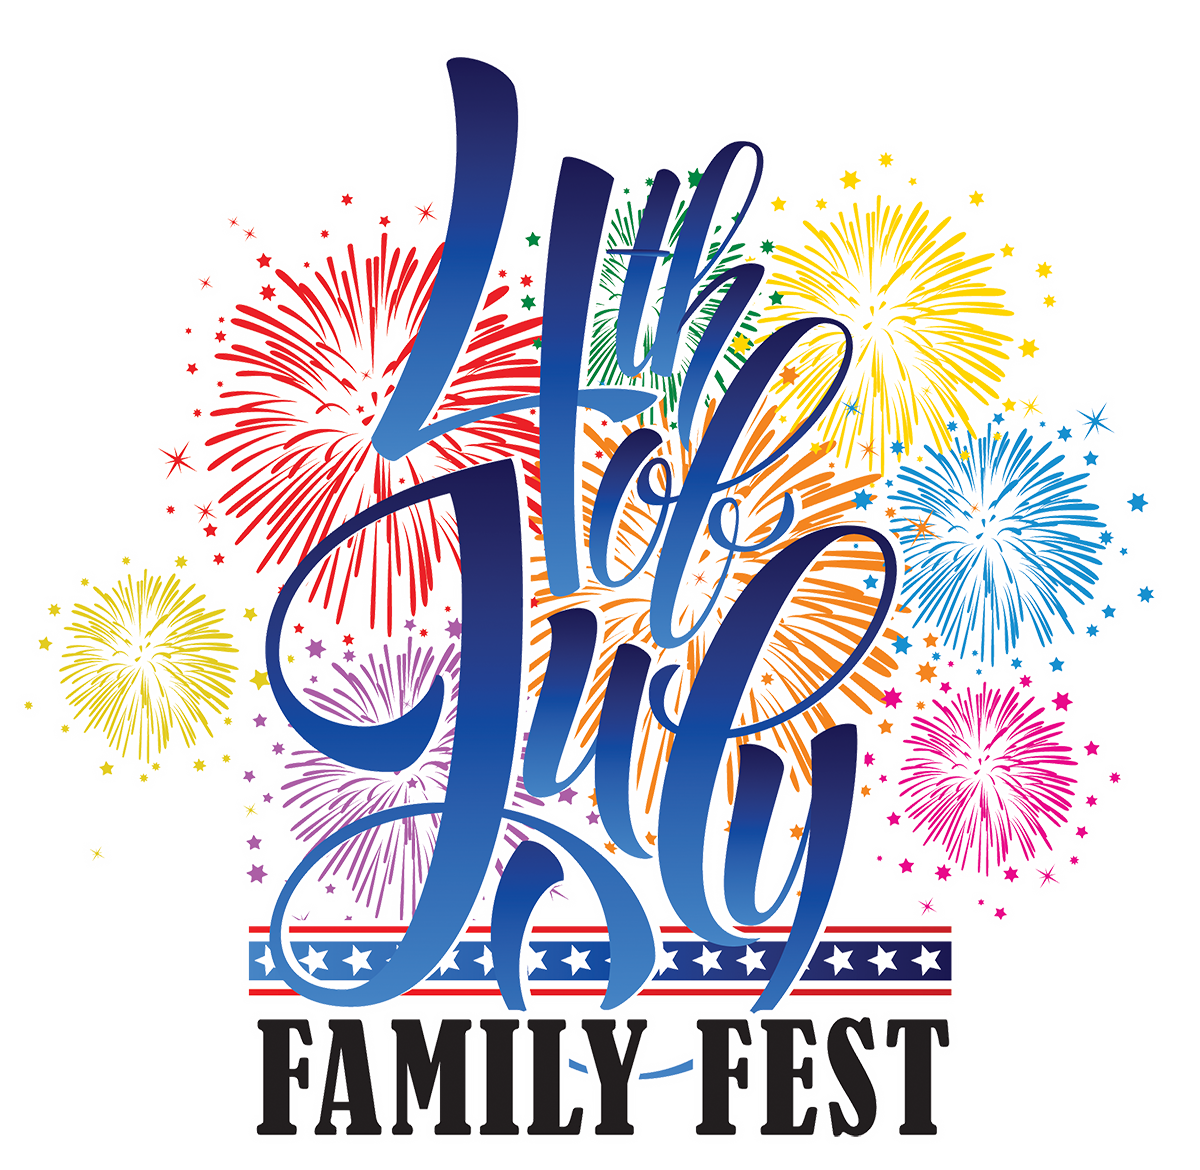 Henry County Family Fun Fest 4th Of July Celebration on Jul 04, 15:00@Warren Holder Park - Buy tickets and Get information on M&J Event Planning